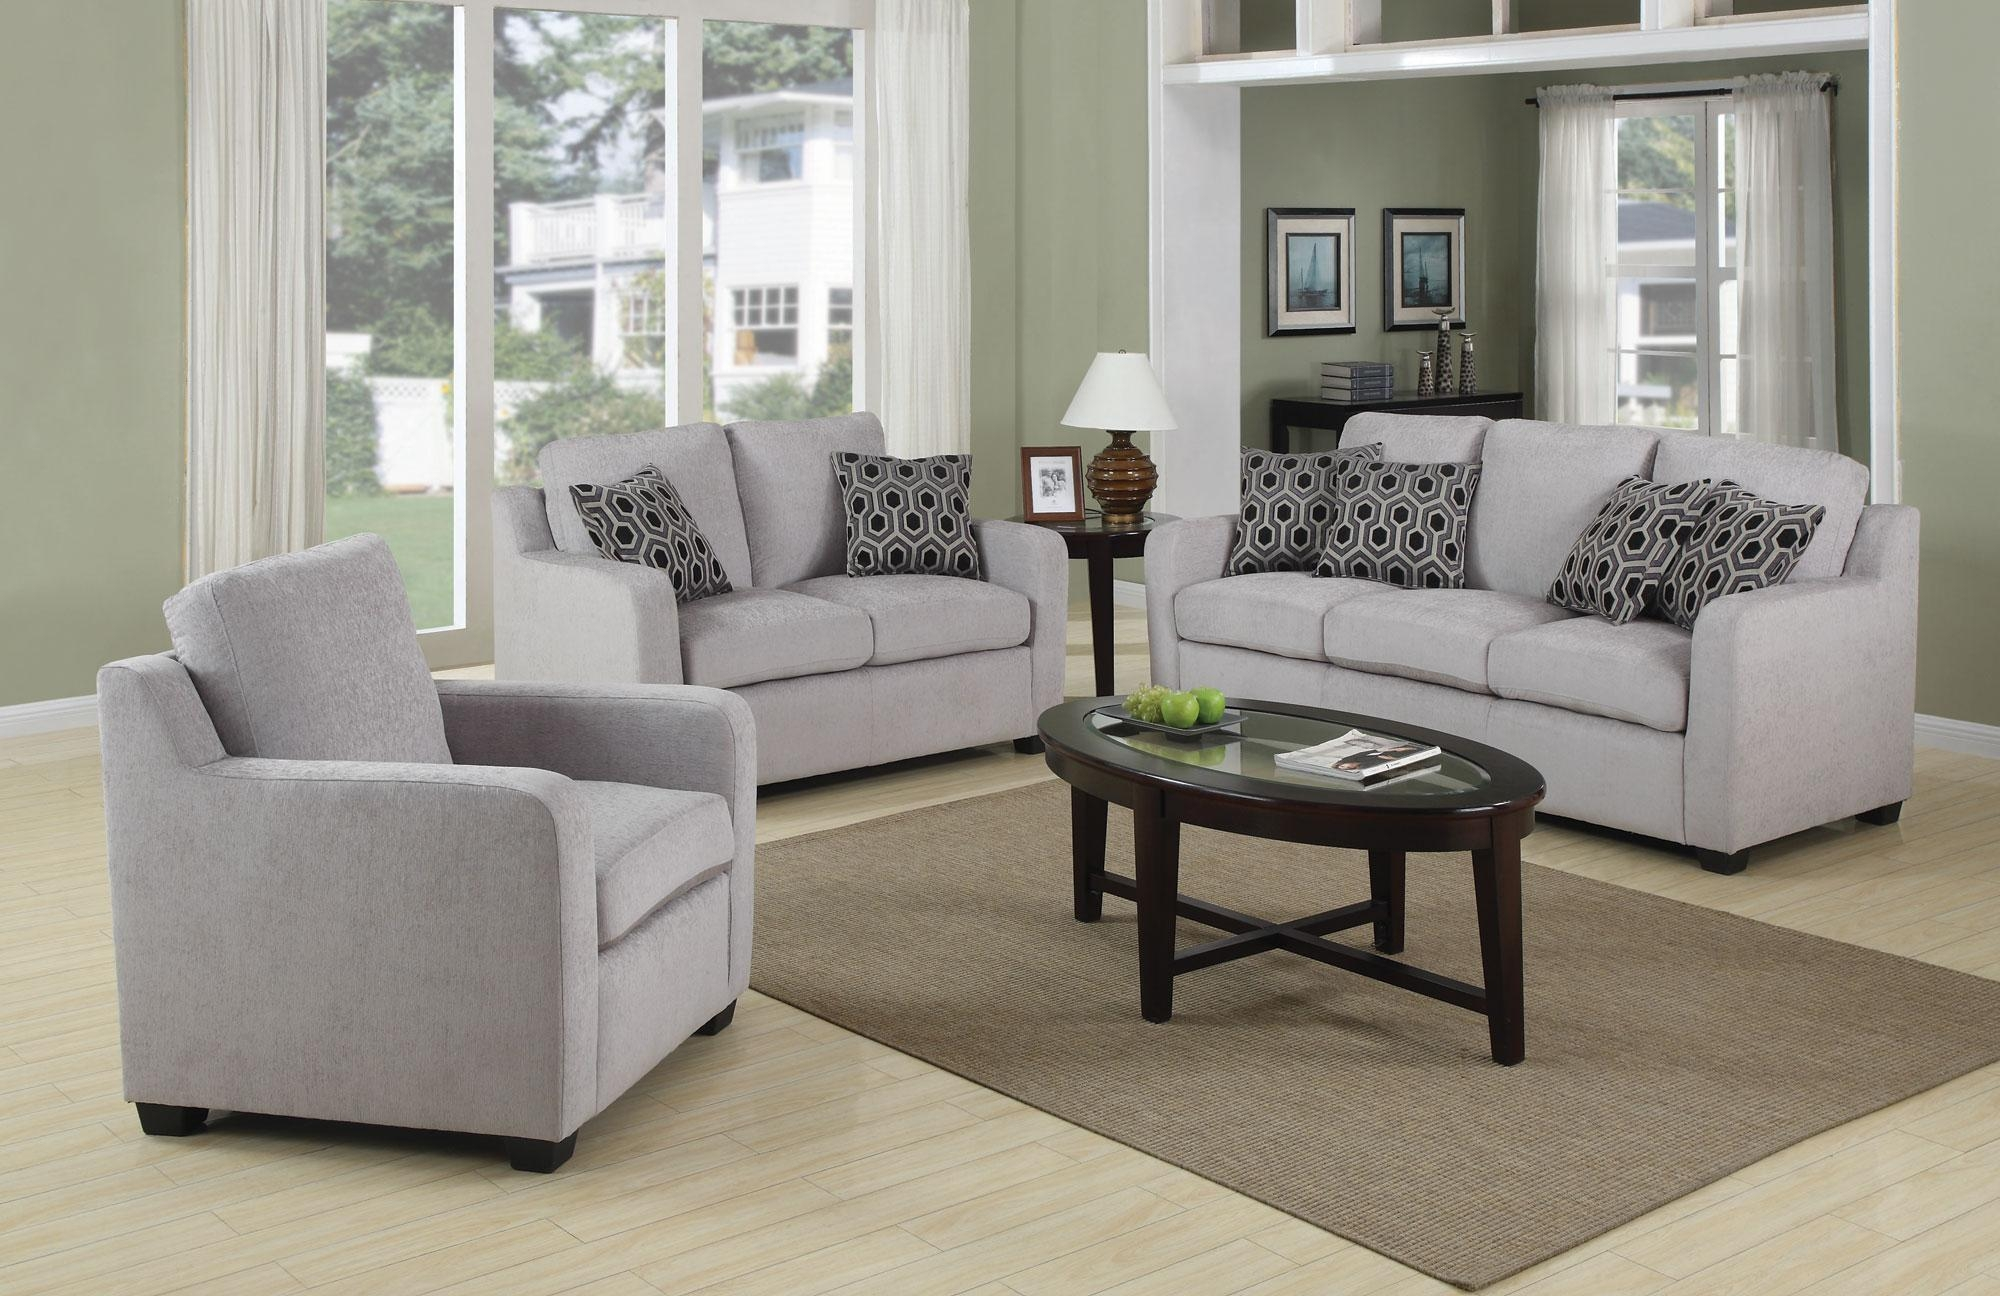 Furniture: Amazing Set Of Chairs For Living Room Setting Furniture Inside Living Room Sofas And Chairs (View 2 of 20)